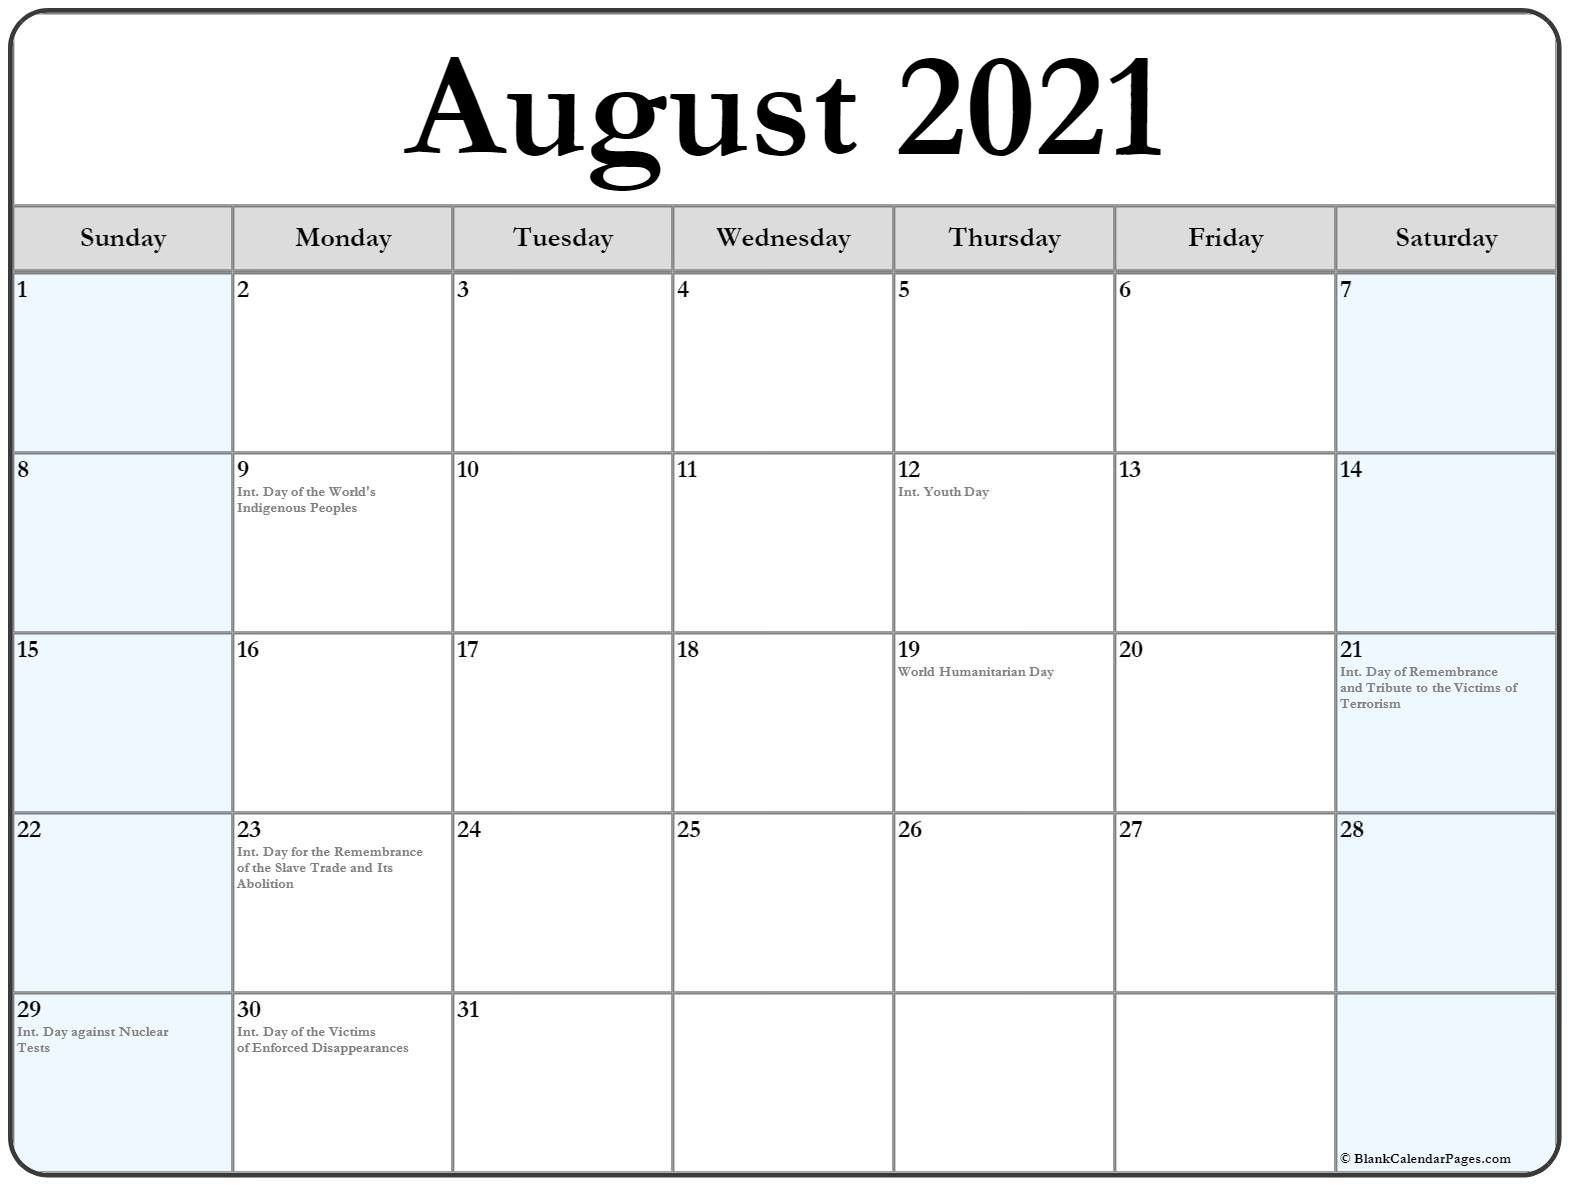 August 2021 Calendar With Holidays  August 2021 To December 2021 Calender